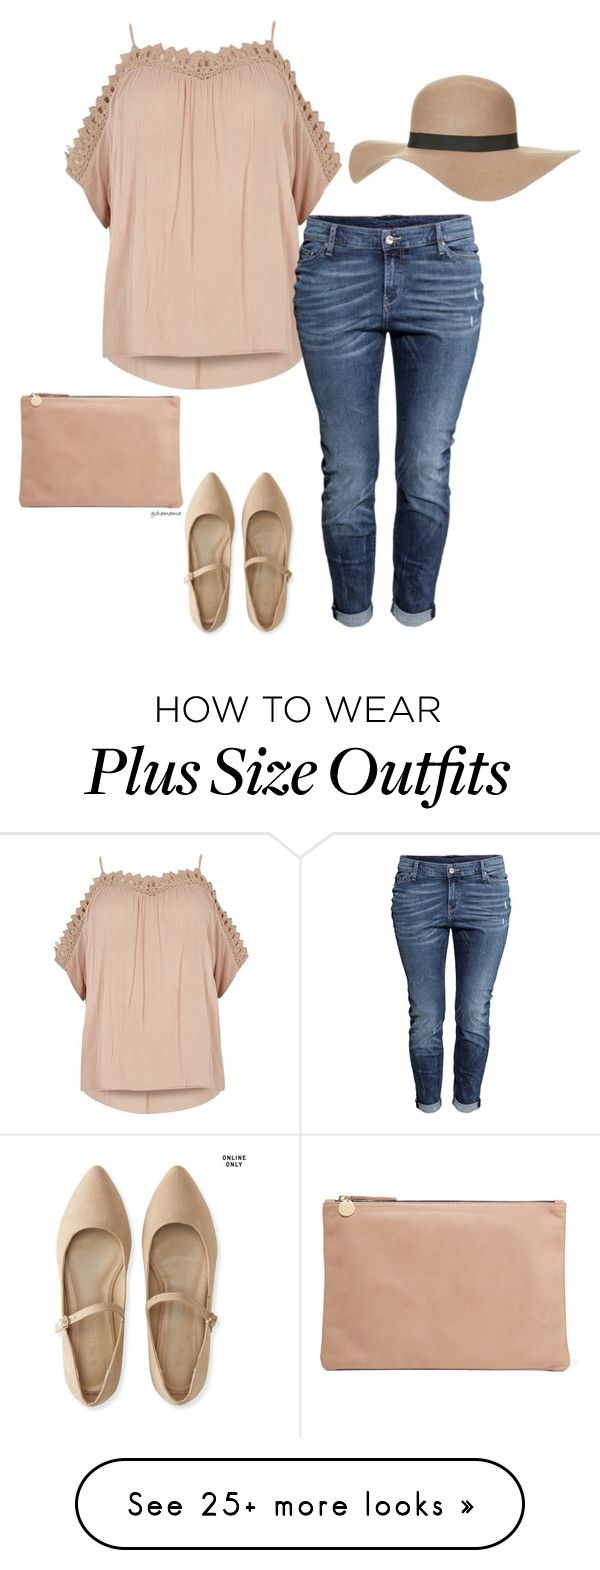 """Calm down- plus size"" by gchamama on Polyvore featuring River Island, H&M, Aéropostale, Clare V. and Topshop"